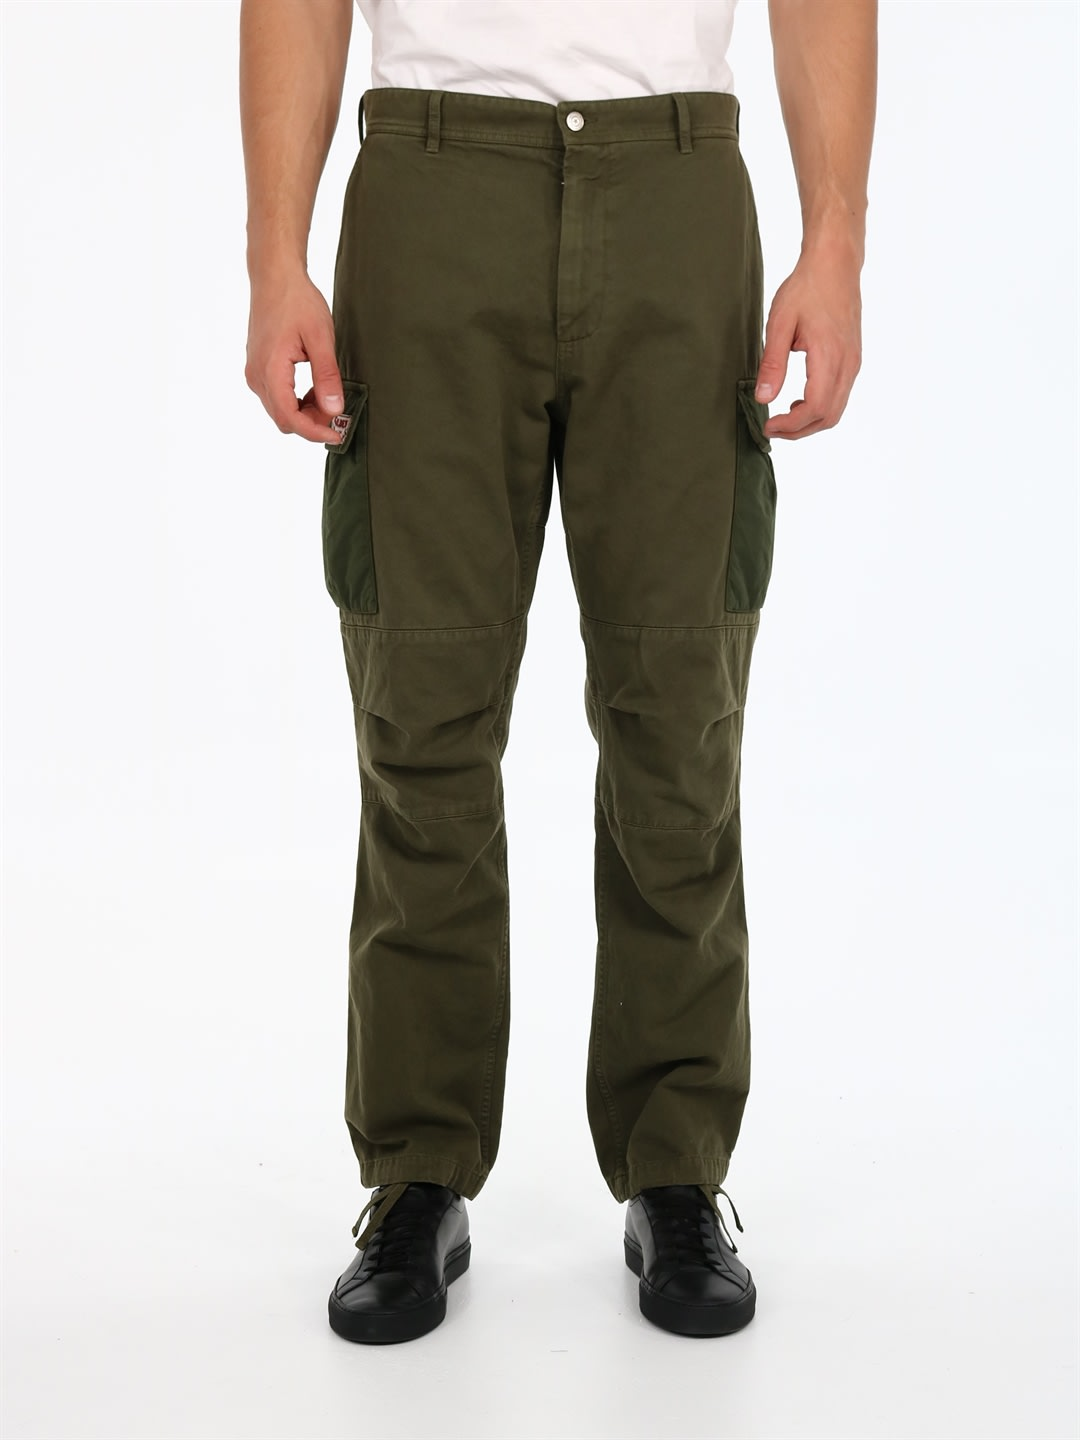 Cargo trousers in military green cotton with side pockets on the legs and adjustable hem with drawstring. Model with side pockets and back flap pockets. Zip and button closure. The model is 1. 90 cm tall and wears size 50IT / LComposition: 100% Cotton